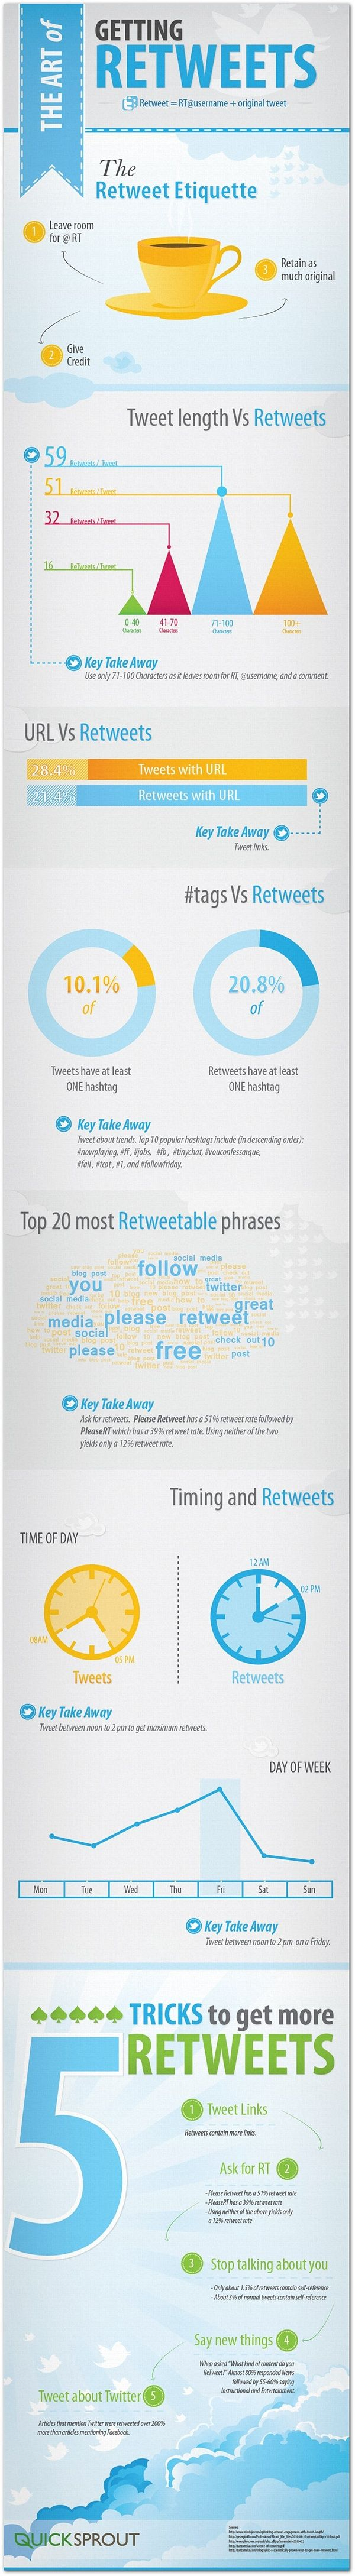 The art of getting retweets | Articles | Home